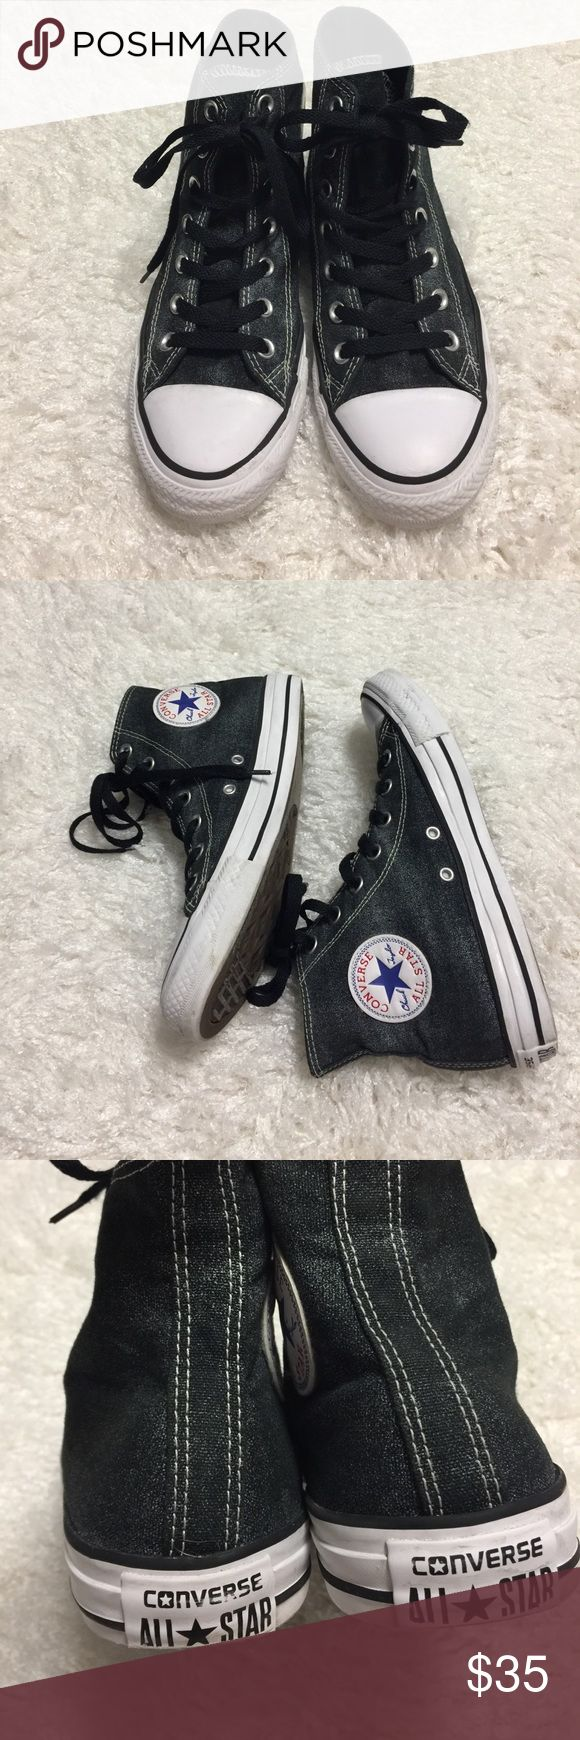 Converse Women High Cut Black Metallic Silver Women Shoes from Converse. Size US 8. Excellent used condition. Converse Shoes Athletic Shoes